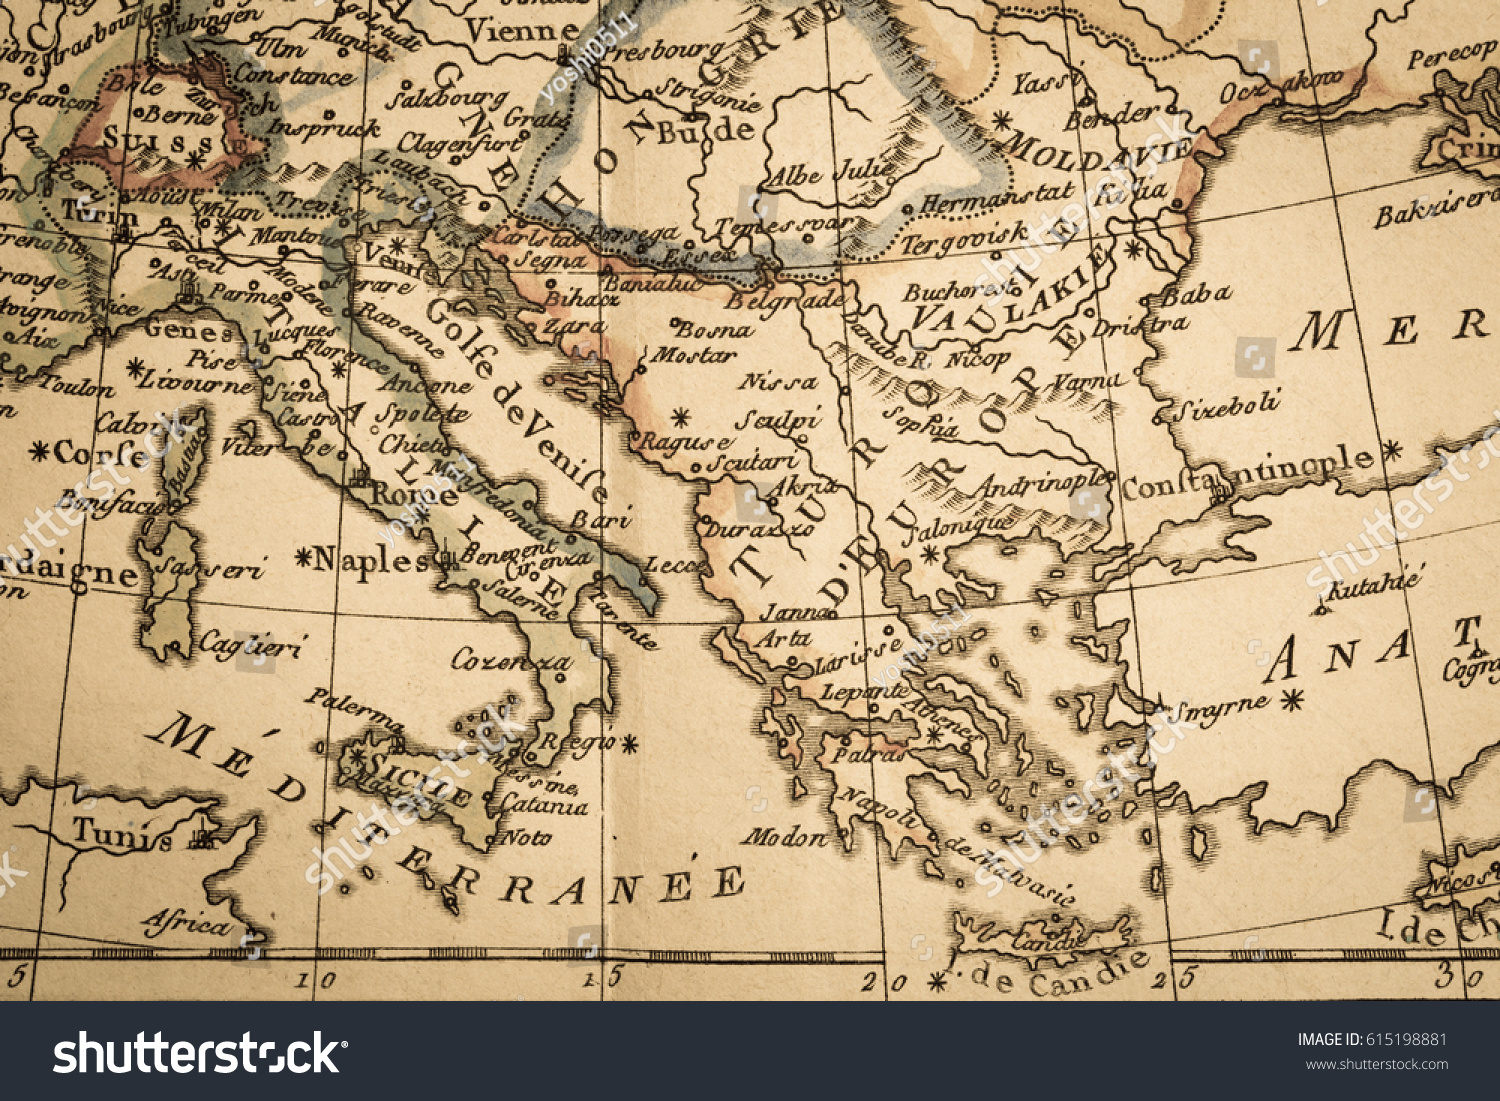 Antique old map italy greece stock photo royalty free 615198881 antique old map italy and greece gumiabroncs Gallery